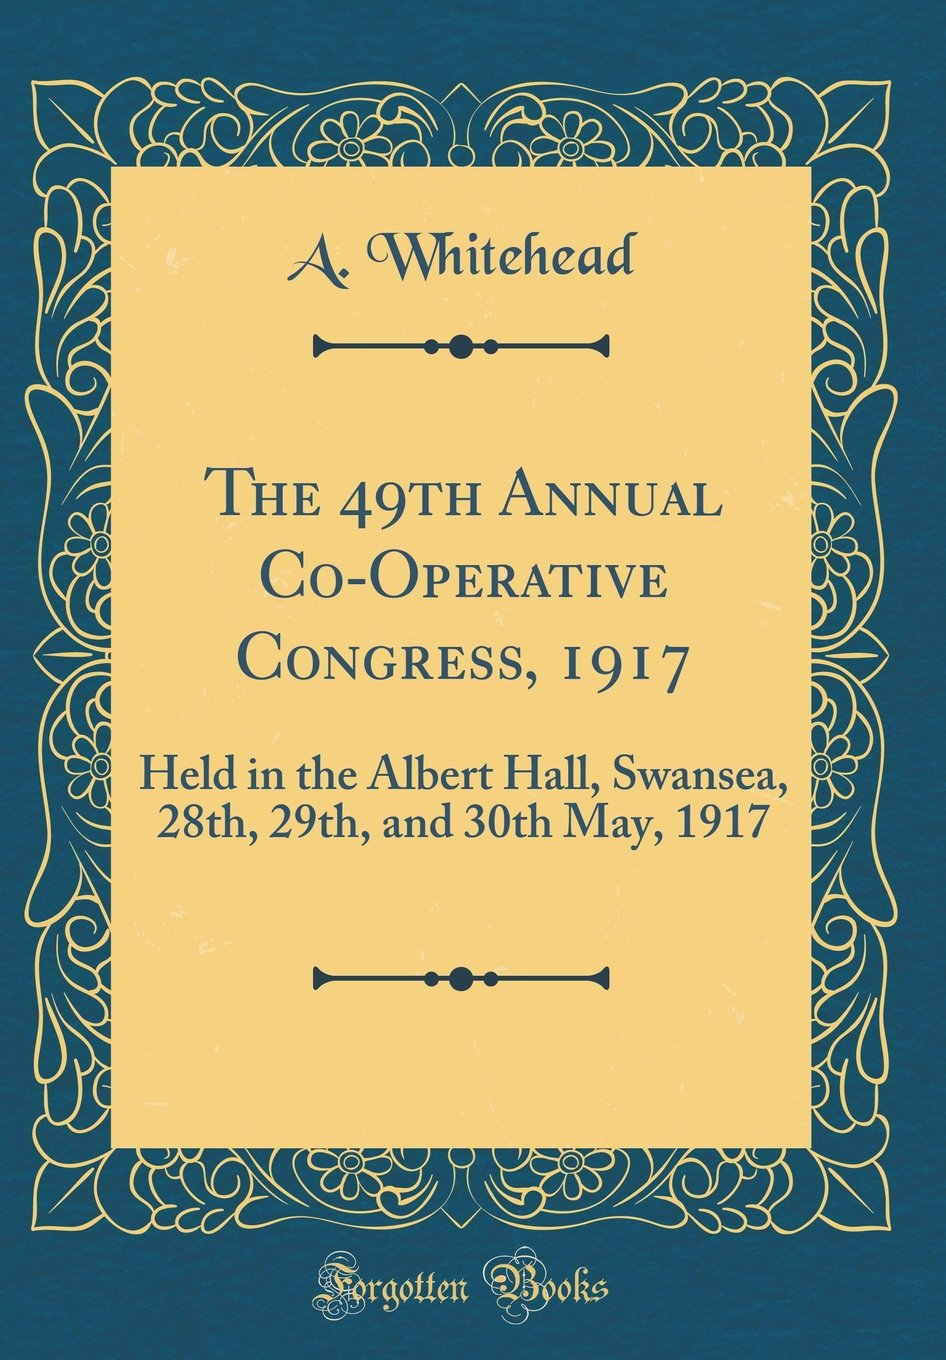 The 49th Annual Co-Operative Congress, 1917: Held in the Albert Hall, Swansea, 28th, 29th, and 30th May, 1917 (Classic Reprint) ePub fb2 ebook